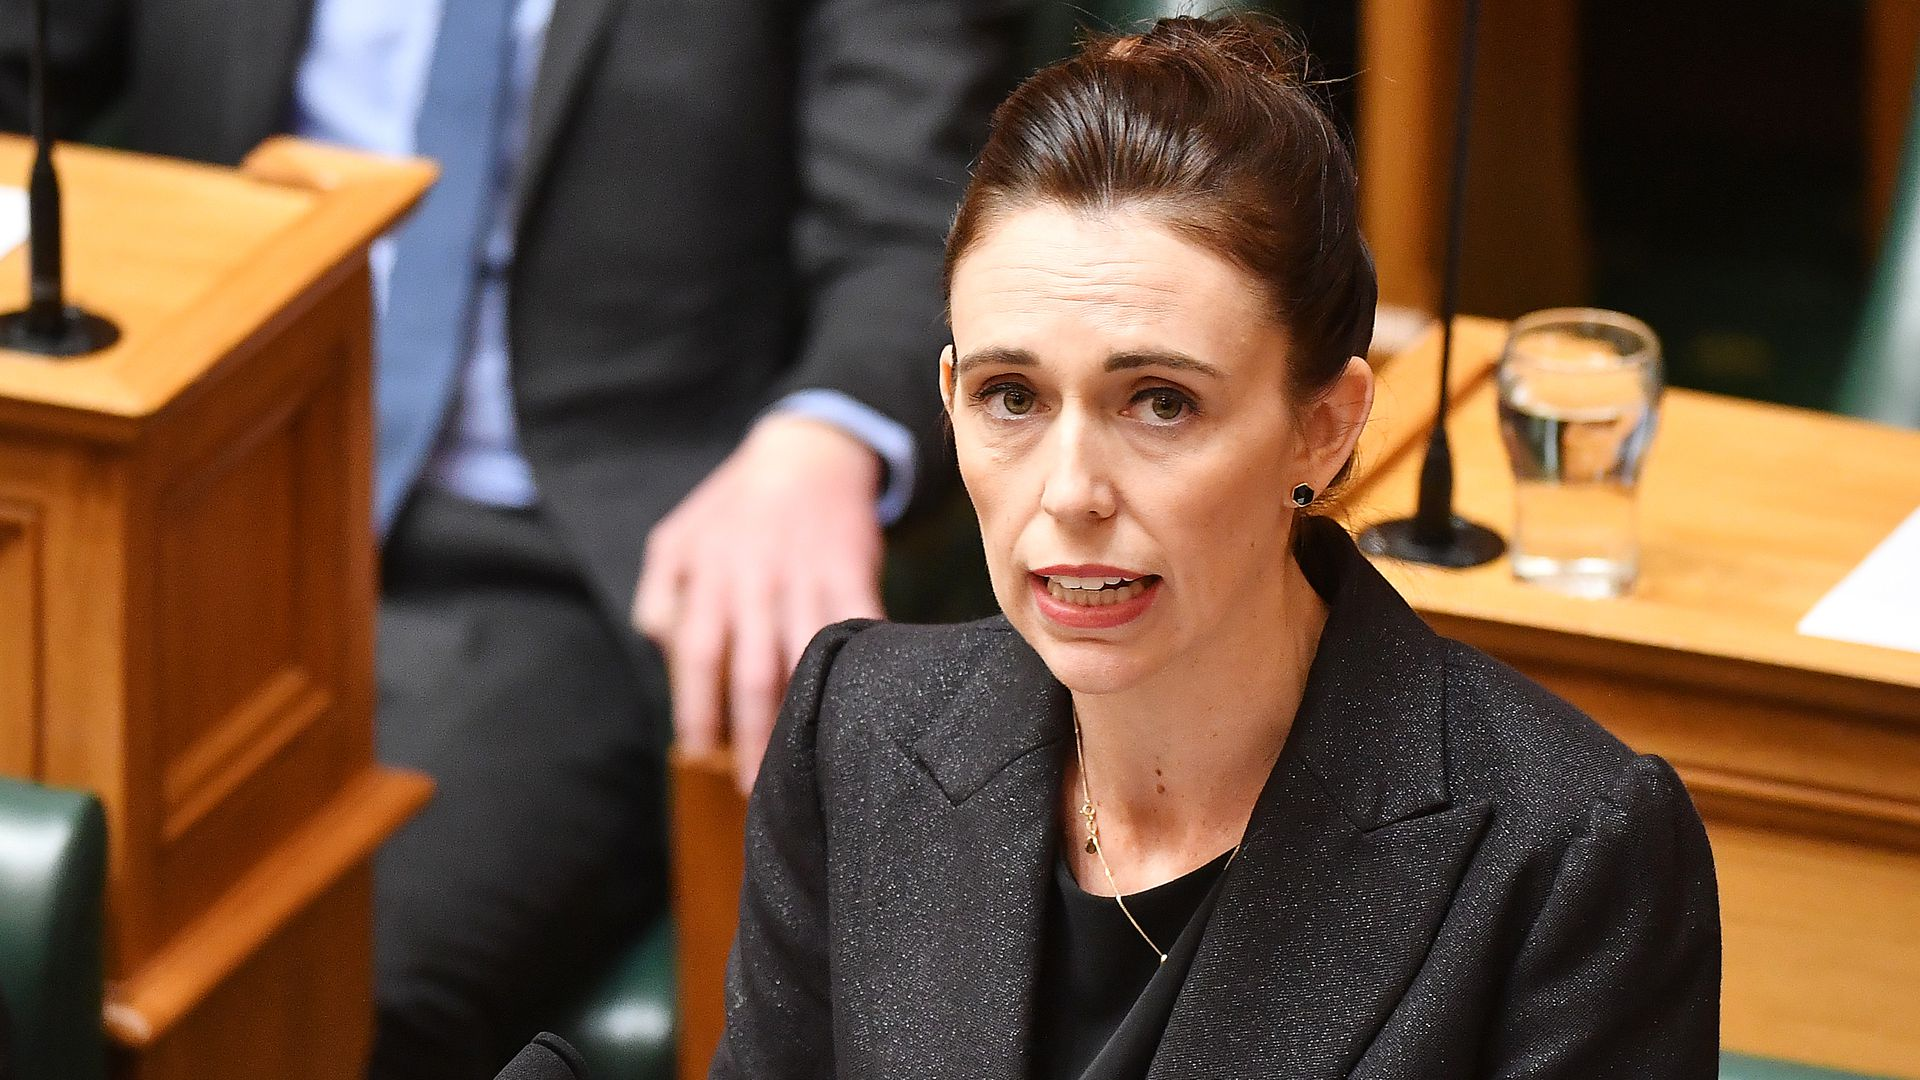 He Is A Terrorist Ardern Vows To Never Speak Attack Suspects Name